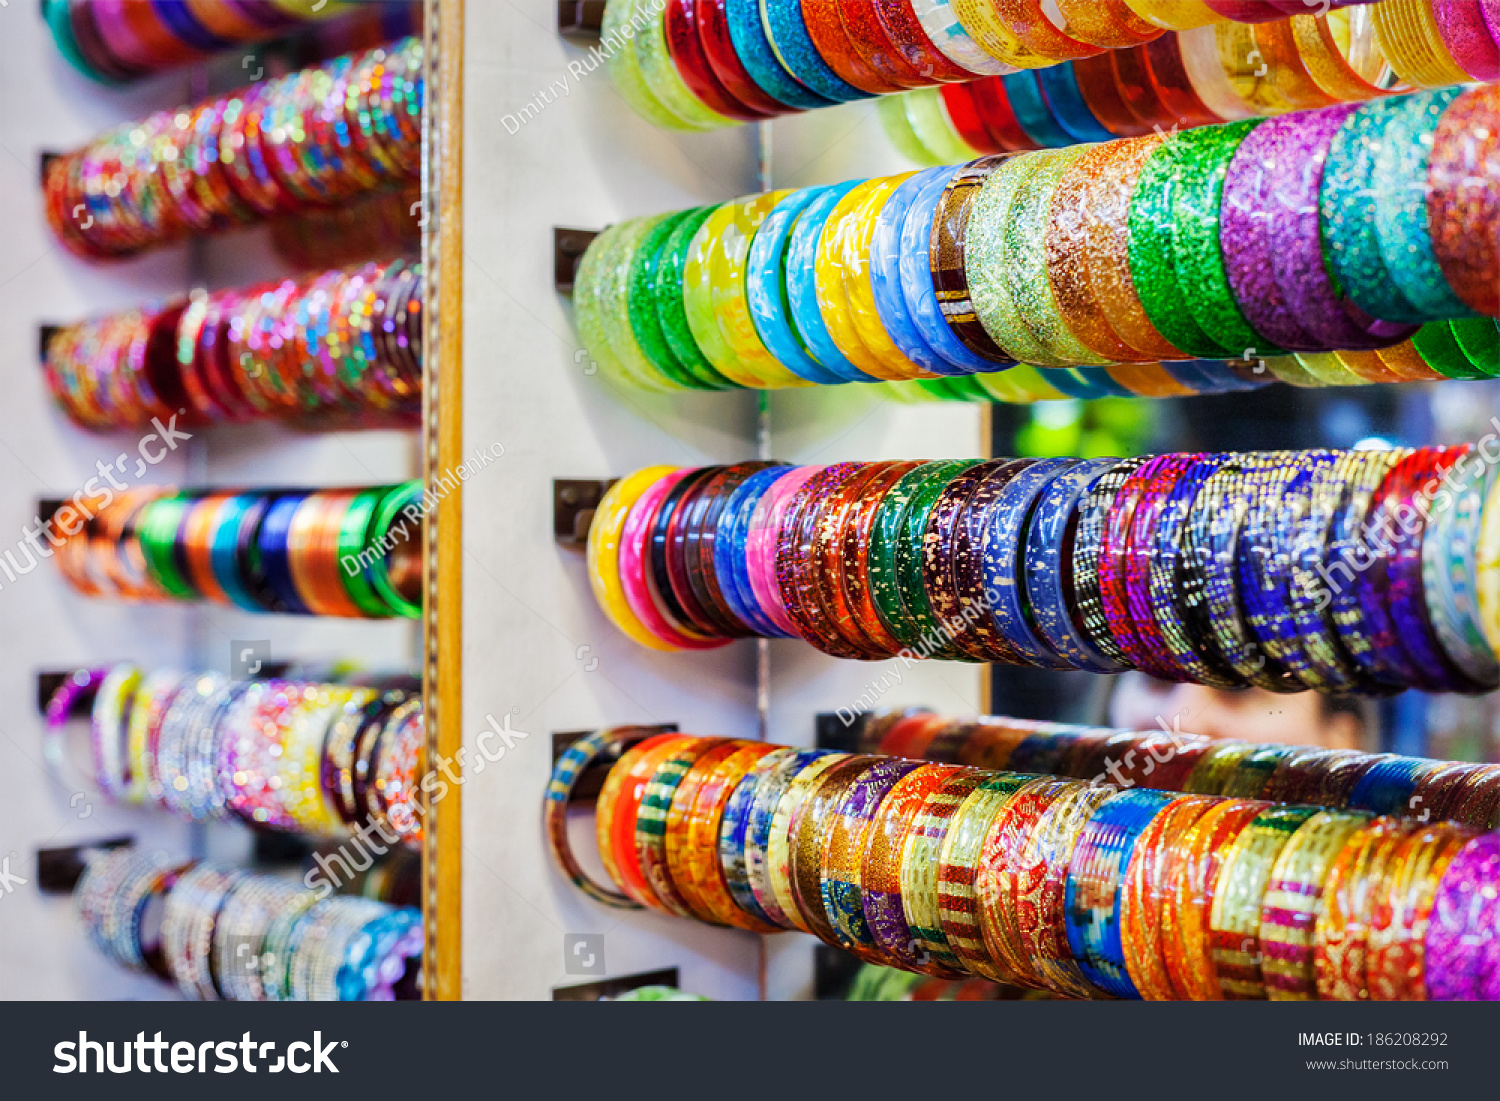 flickr in vvinod vinod veera bangles by every bangalore colors india b shop wh of bangle photos